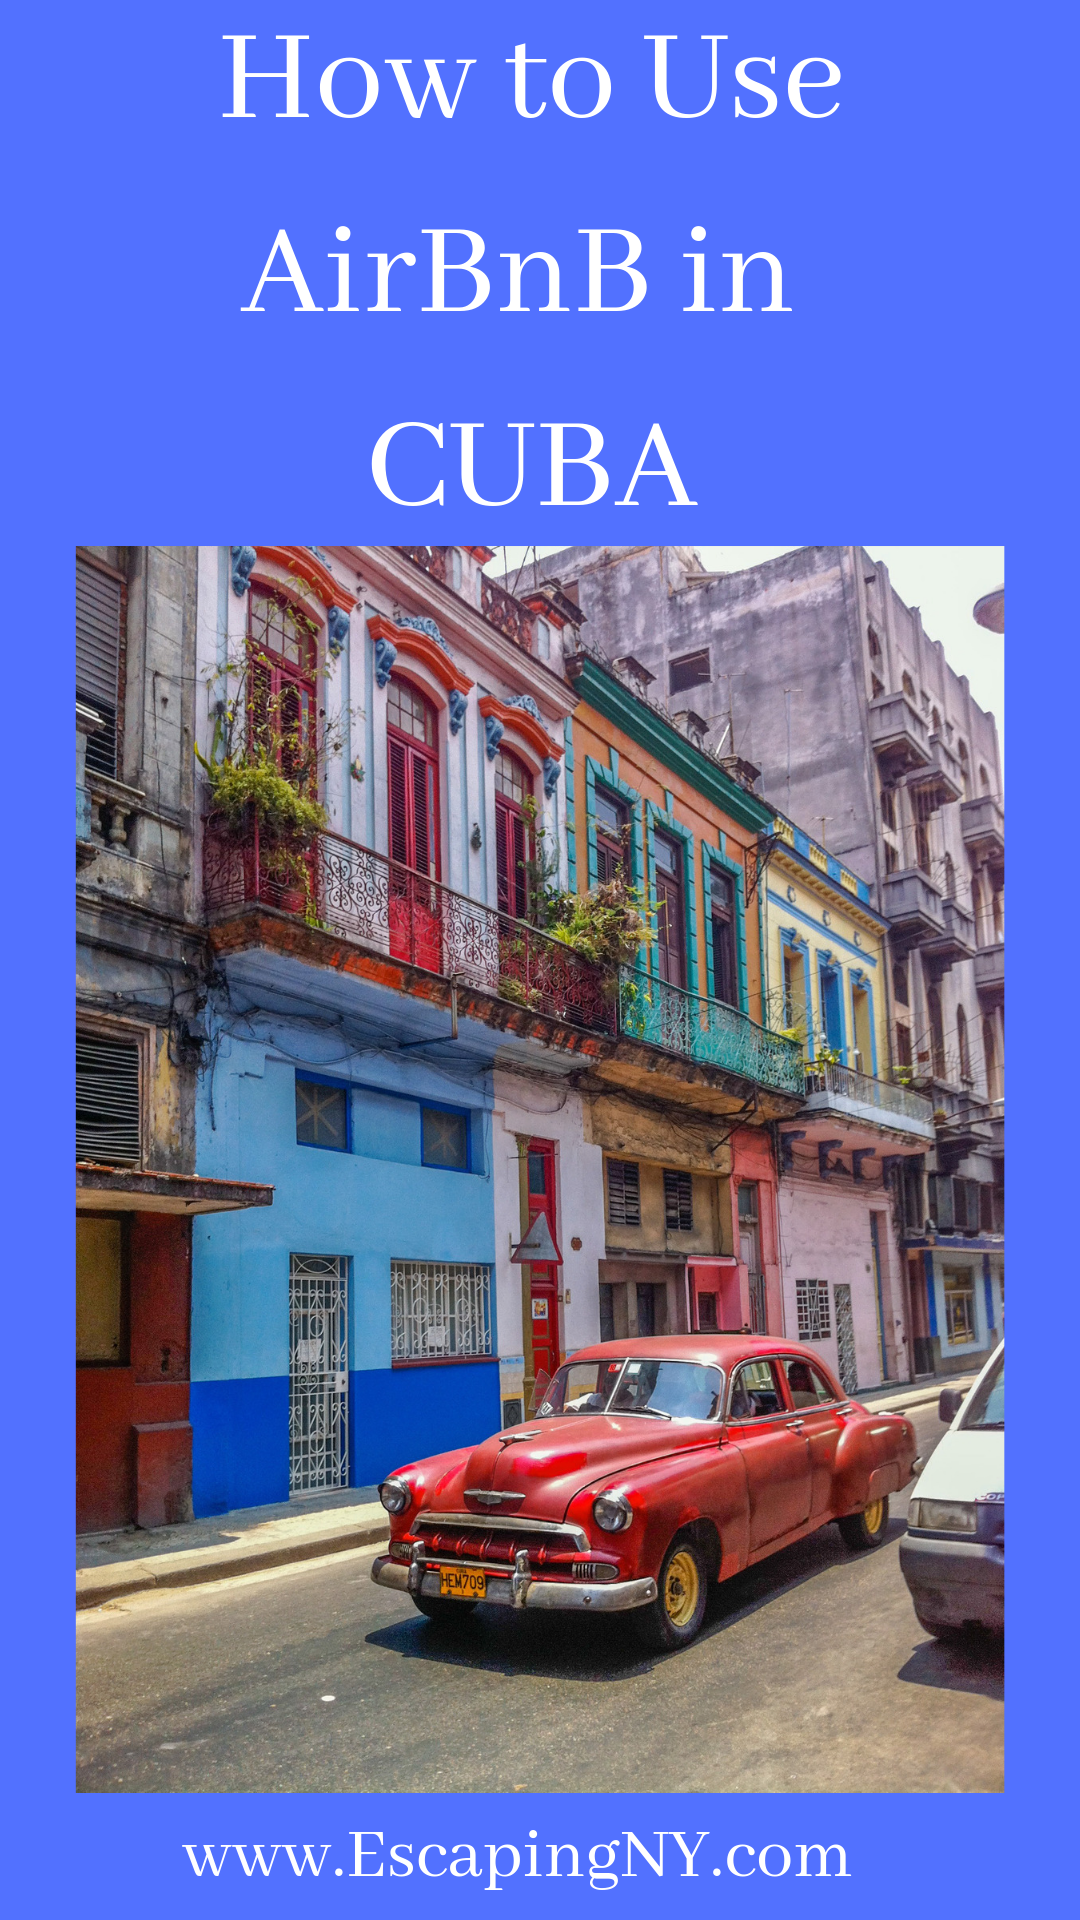 How_to_use_AirBnB_in_Cuba.png